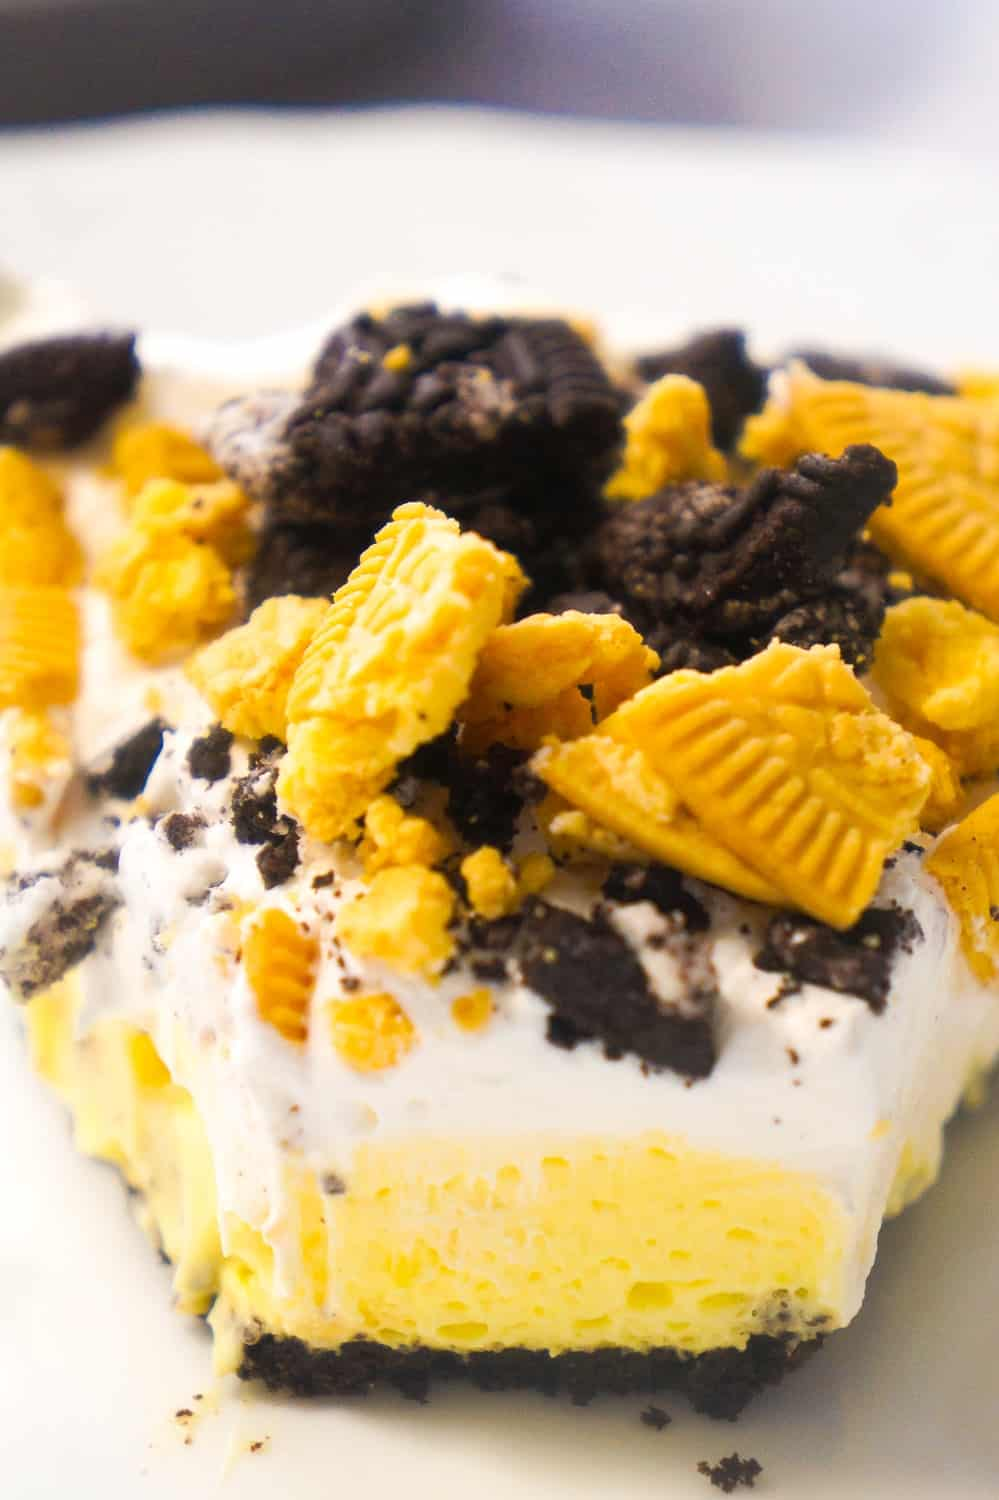 No Bake Lemon Oreo Pie is an easy dessert recipe perfect for summer. A store bought Oreo cookie crust is filled with instant lemon pudding and Cool Whip and topped with crumbled Oreo cookies.